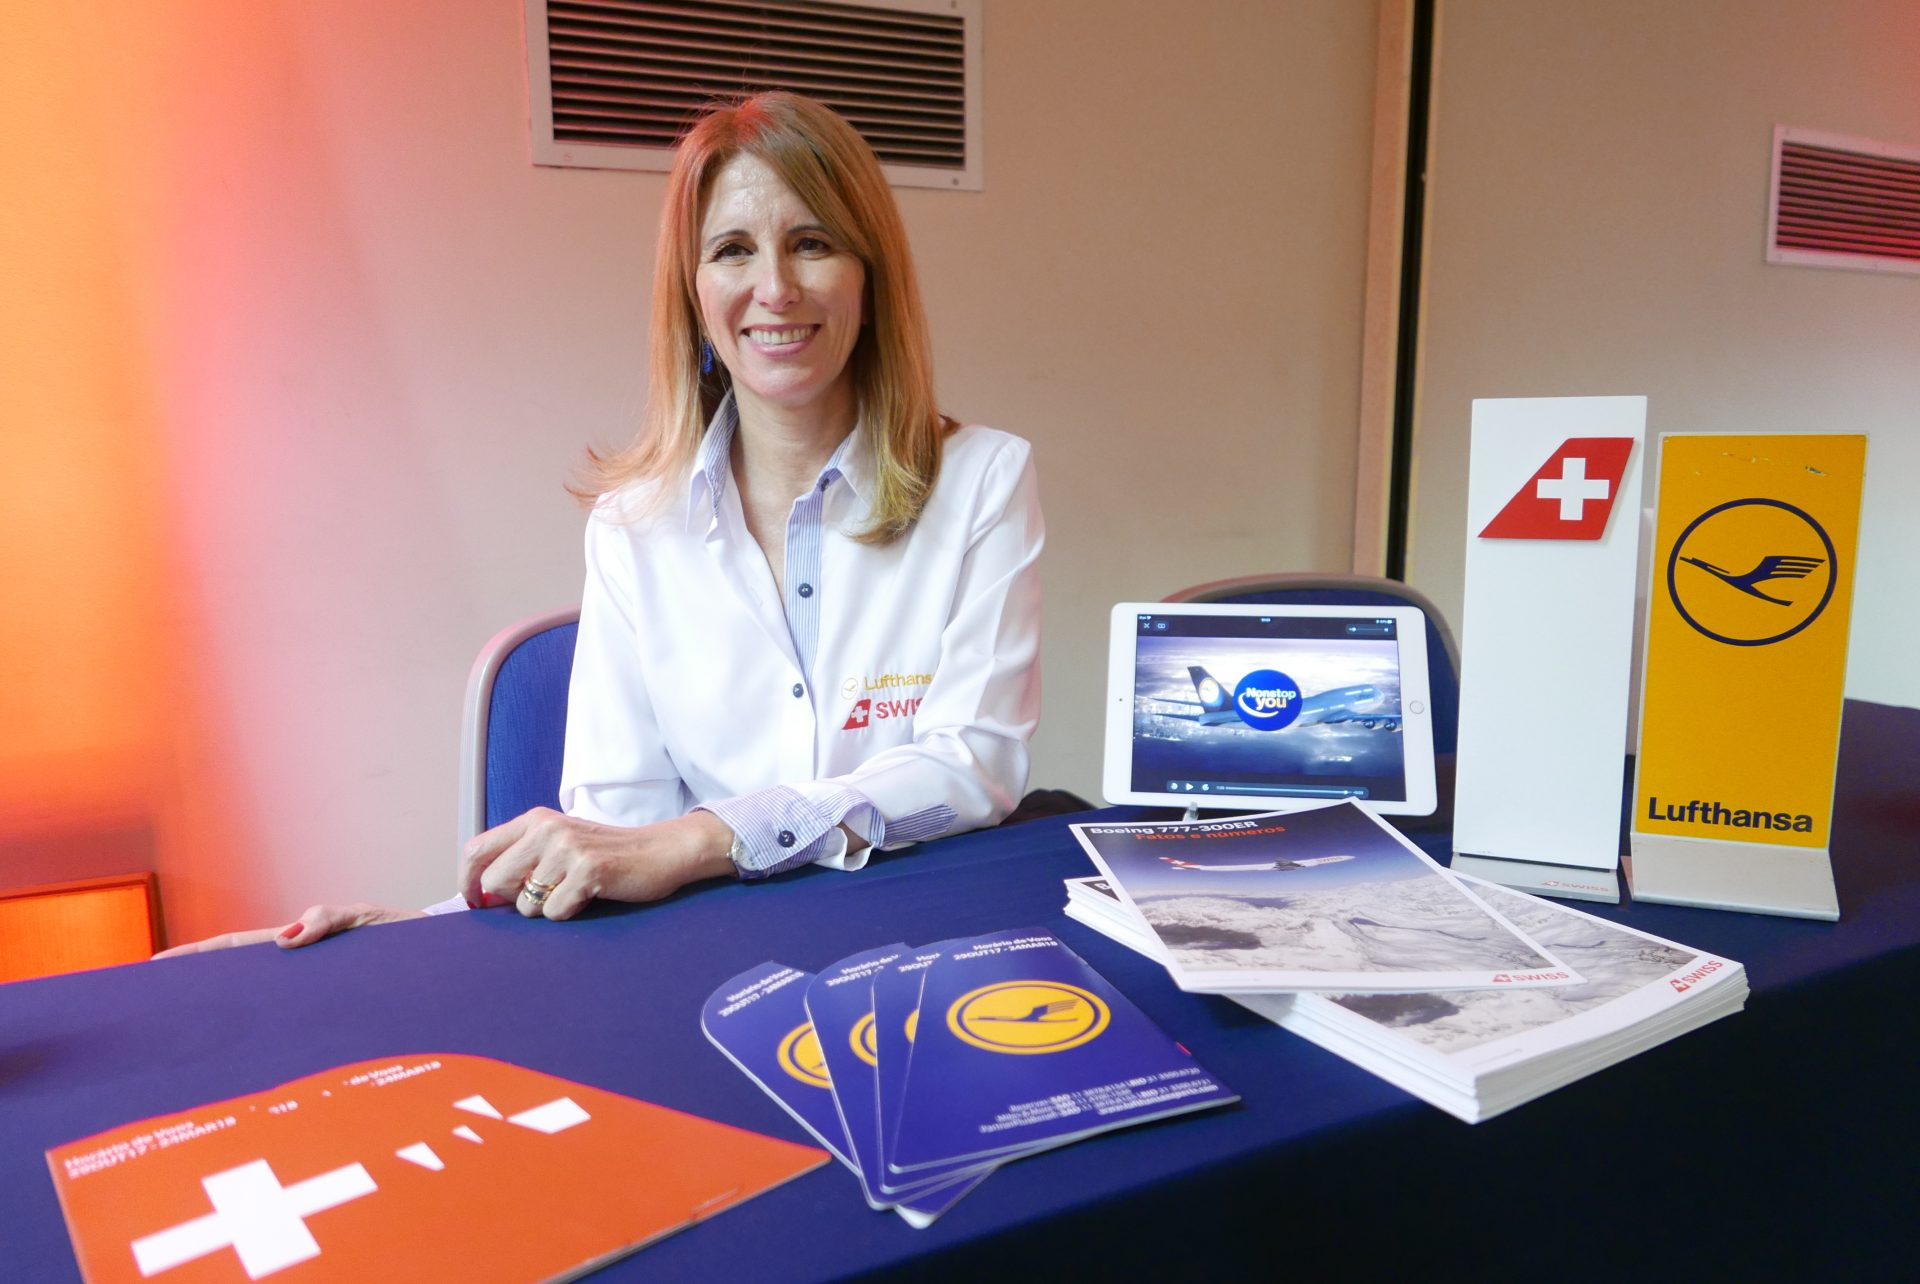 Cristina Rache, executiva de contas do Lufthansa Group